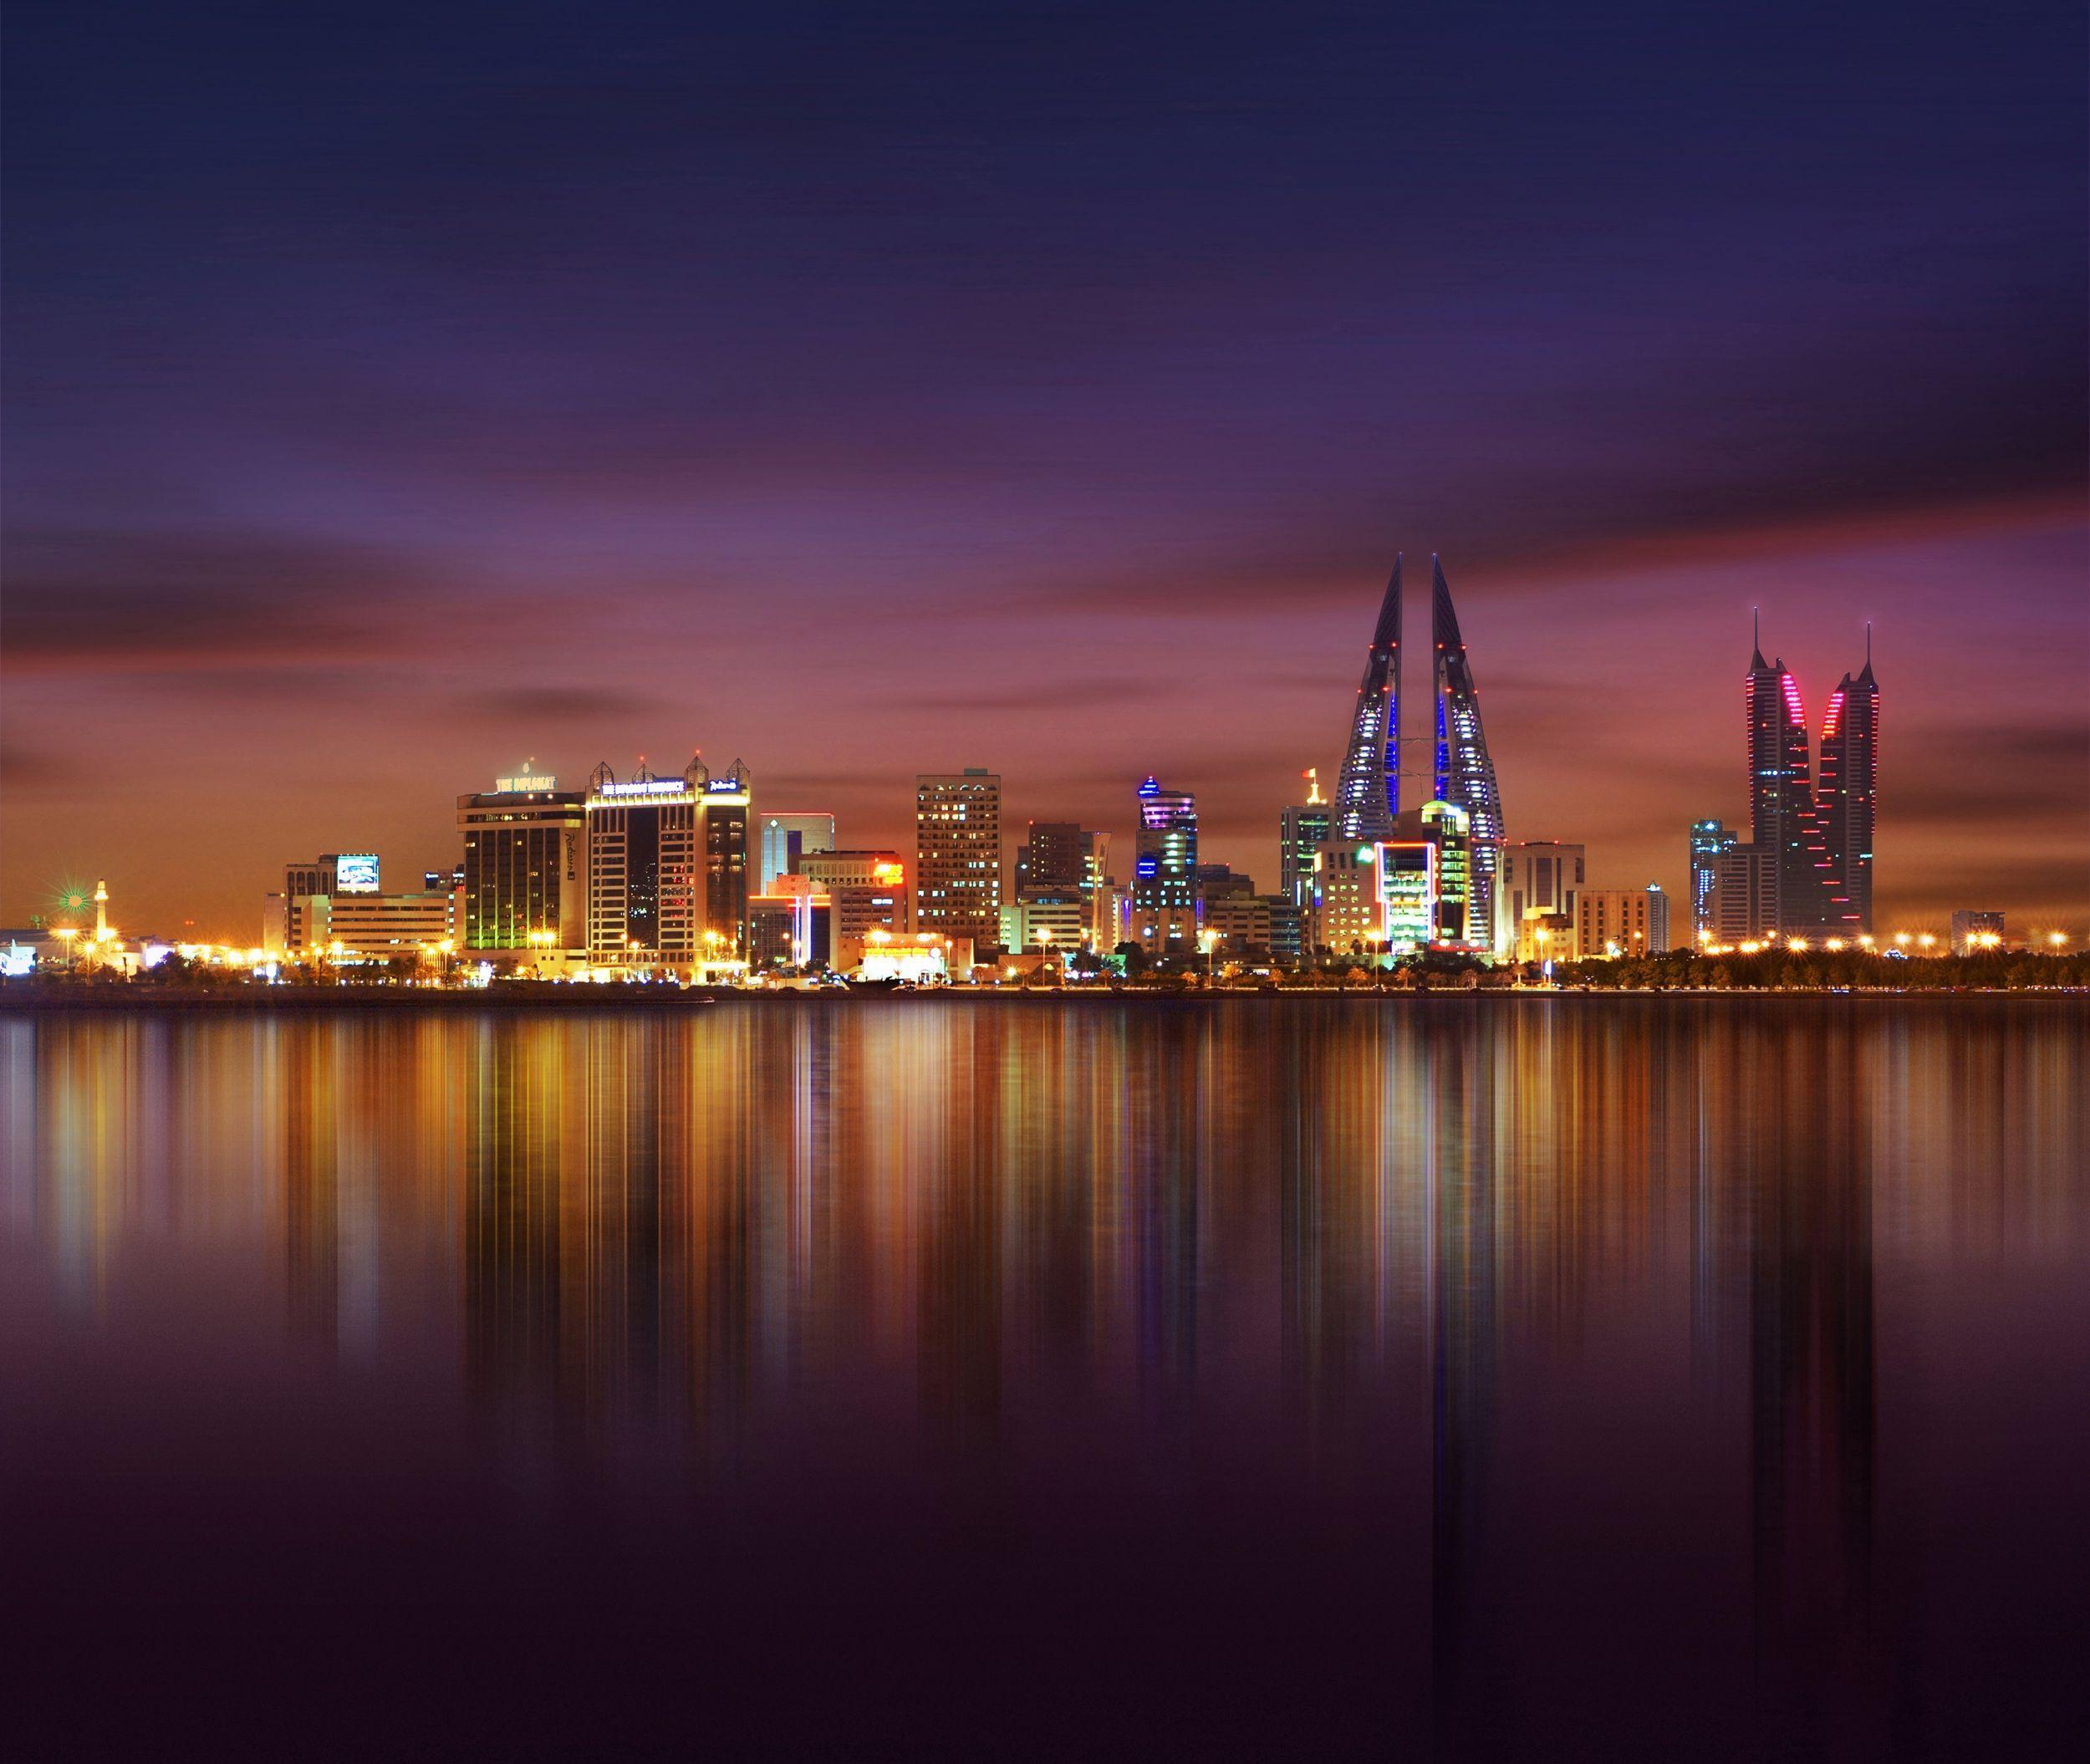 New Bahrain Wallpapers and Pictures Graphics download for free